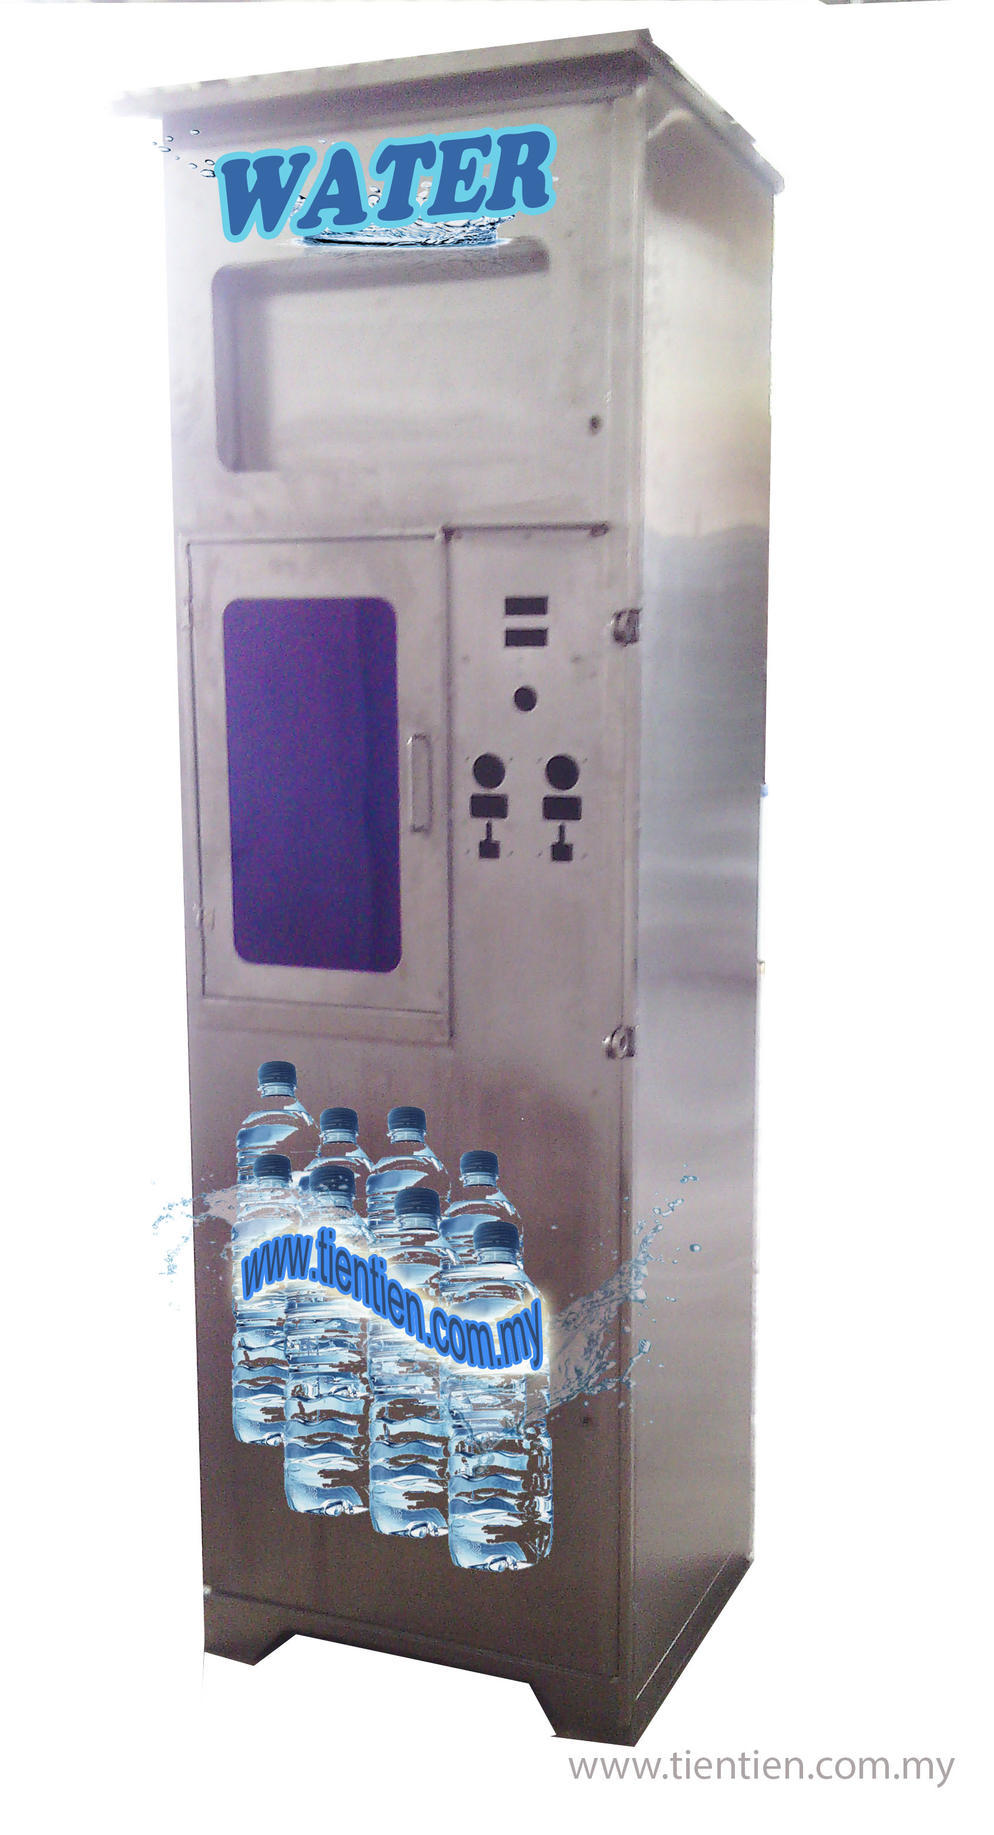 395983-WATER_VENDING_MACHINE_SMALL.jpg